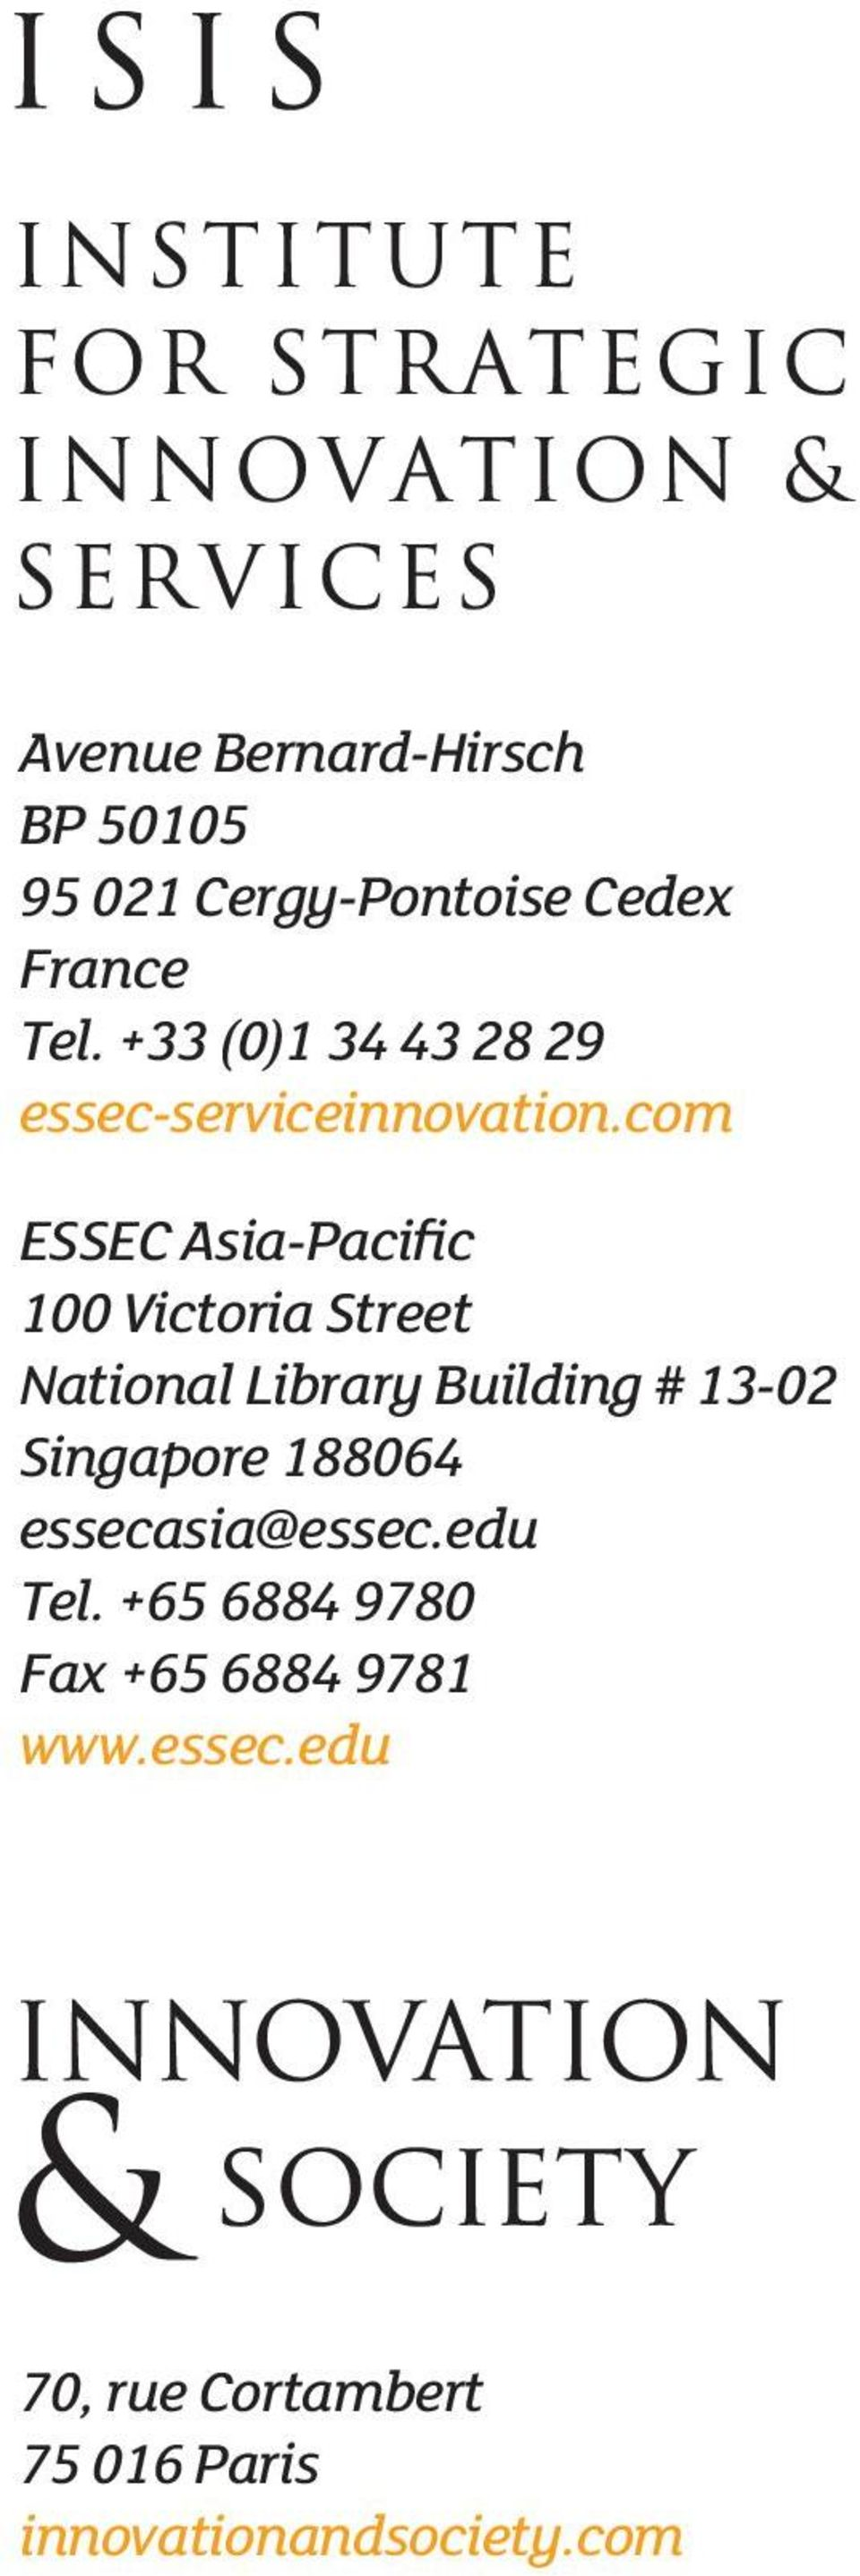 com ESSEC Asia-Pacific 100 Victoria Street National Library Building # 13-02